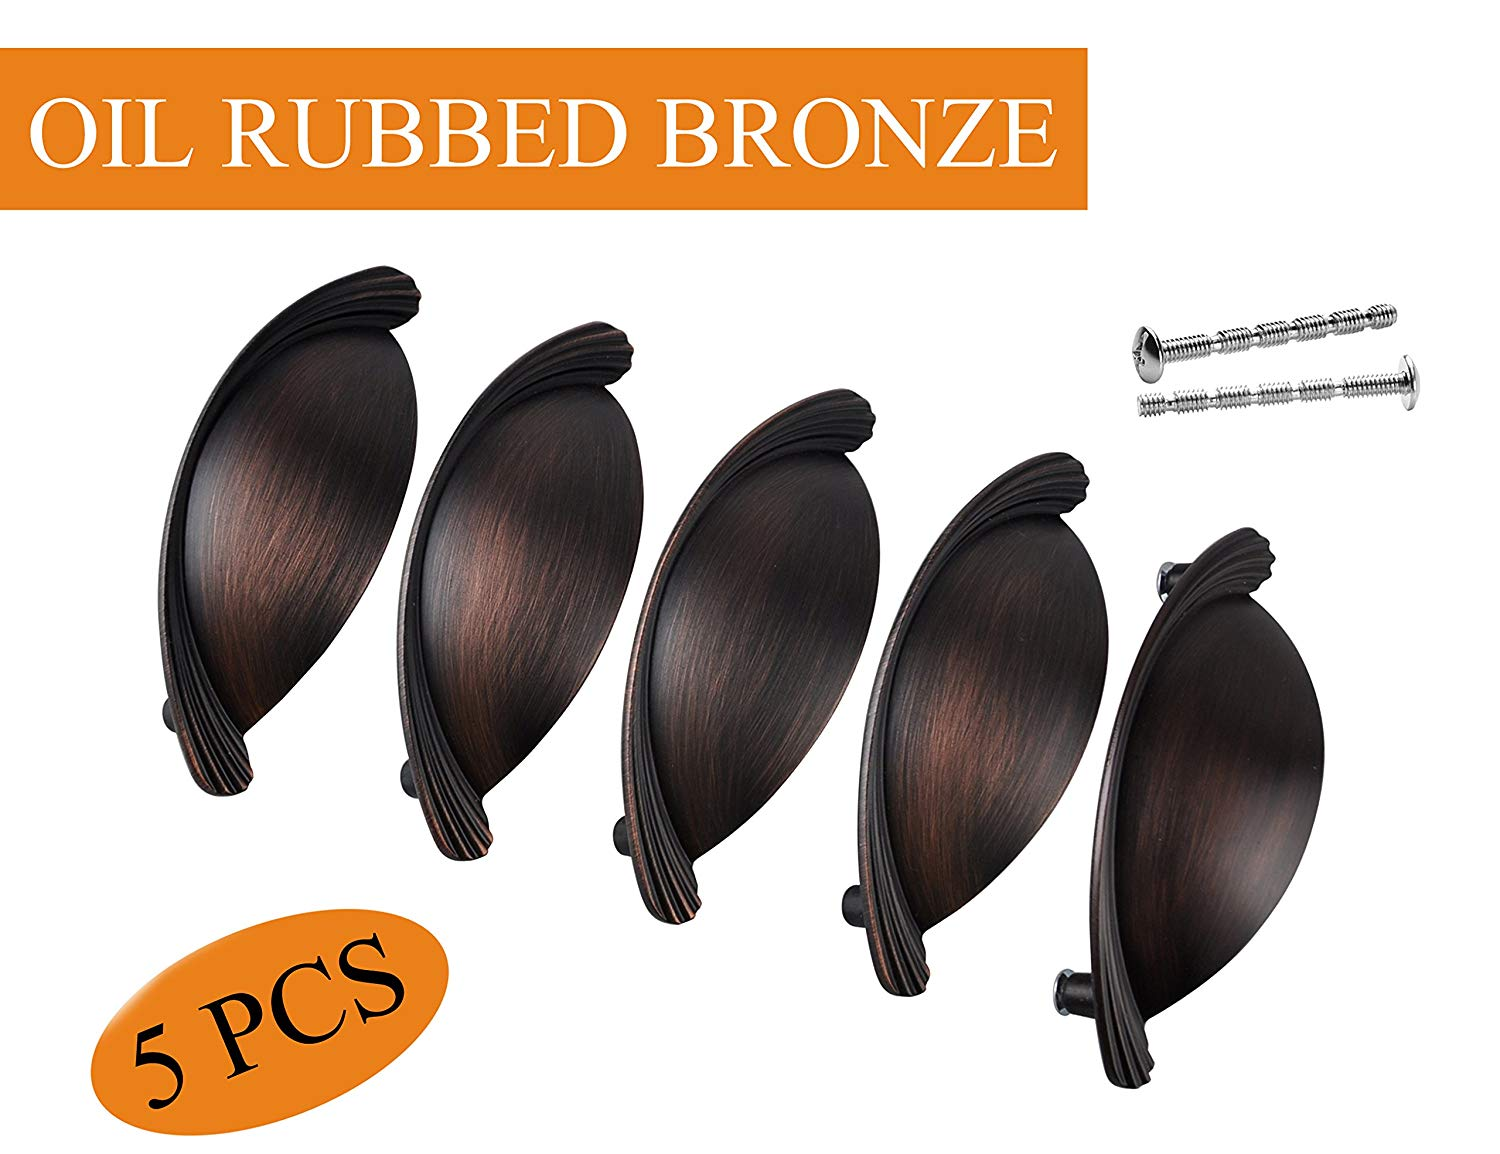 Oil Rubbed Bronze Bin Cup Handle for Cabinet Hardware,3 inch(76MM) Drawer Pulls in Black 5 PCS,XJPLZ118976ORB-5PAMZ